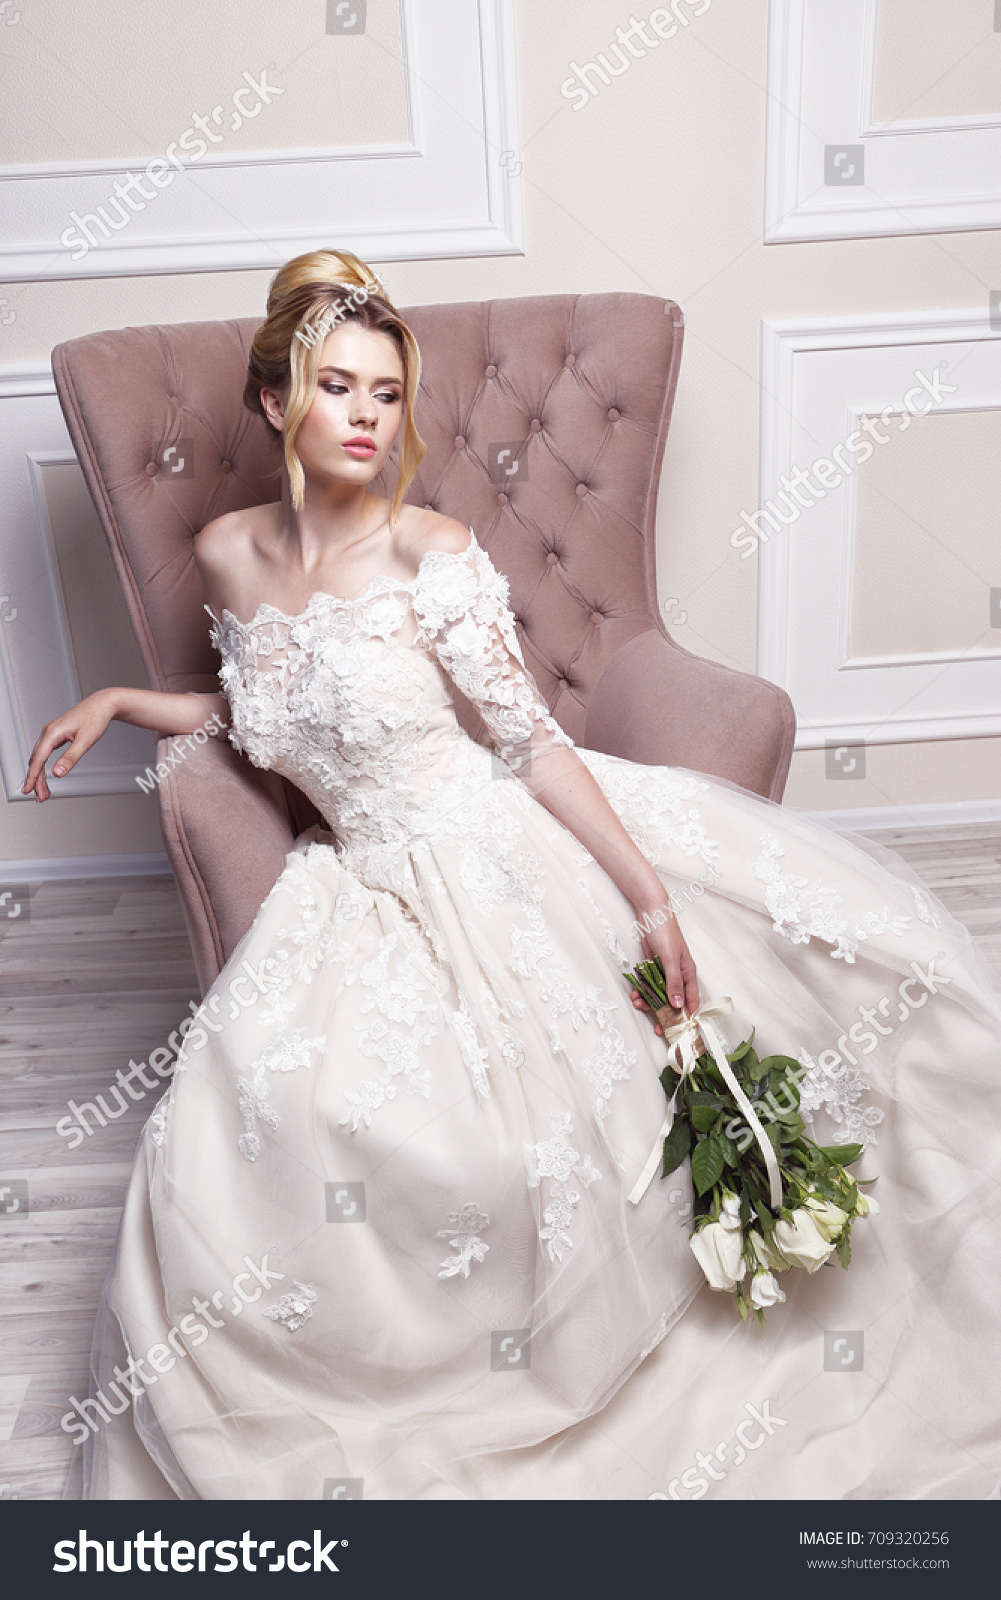 Young Beautiful Bride Wedding Hairstyle Blond Stock Photo 709320256 ...